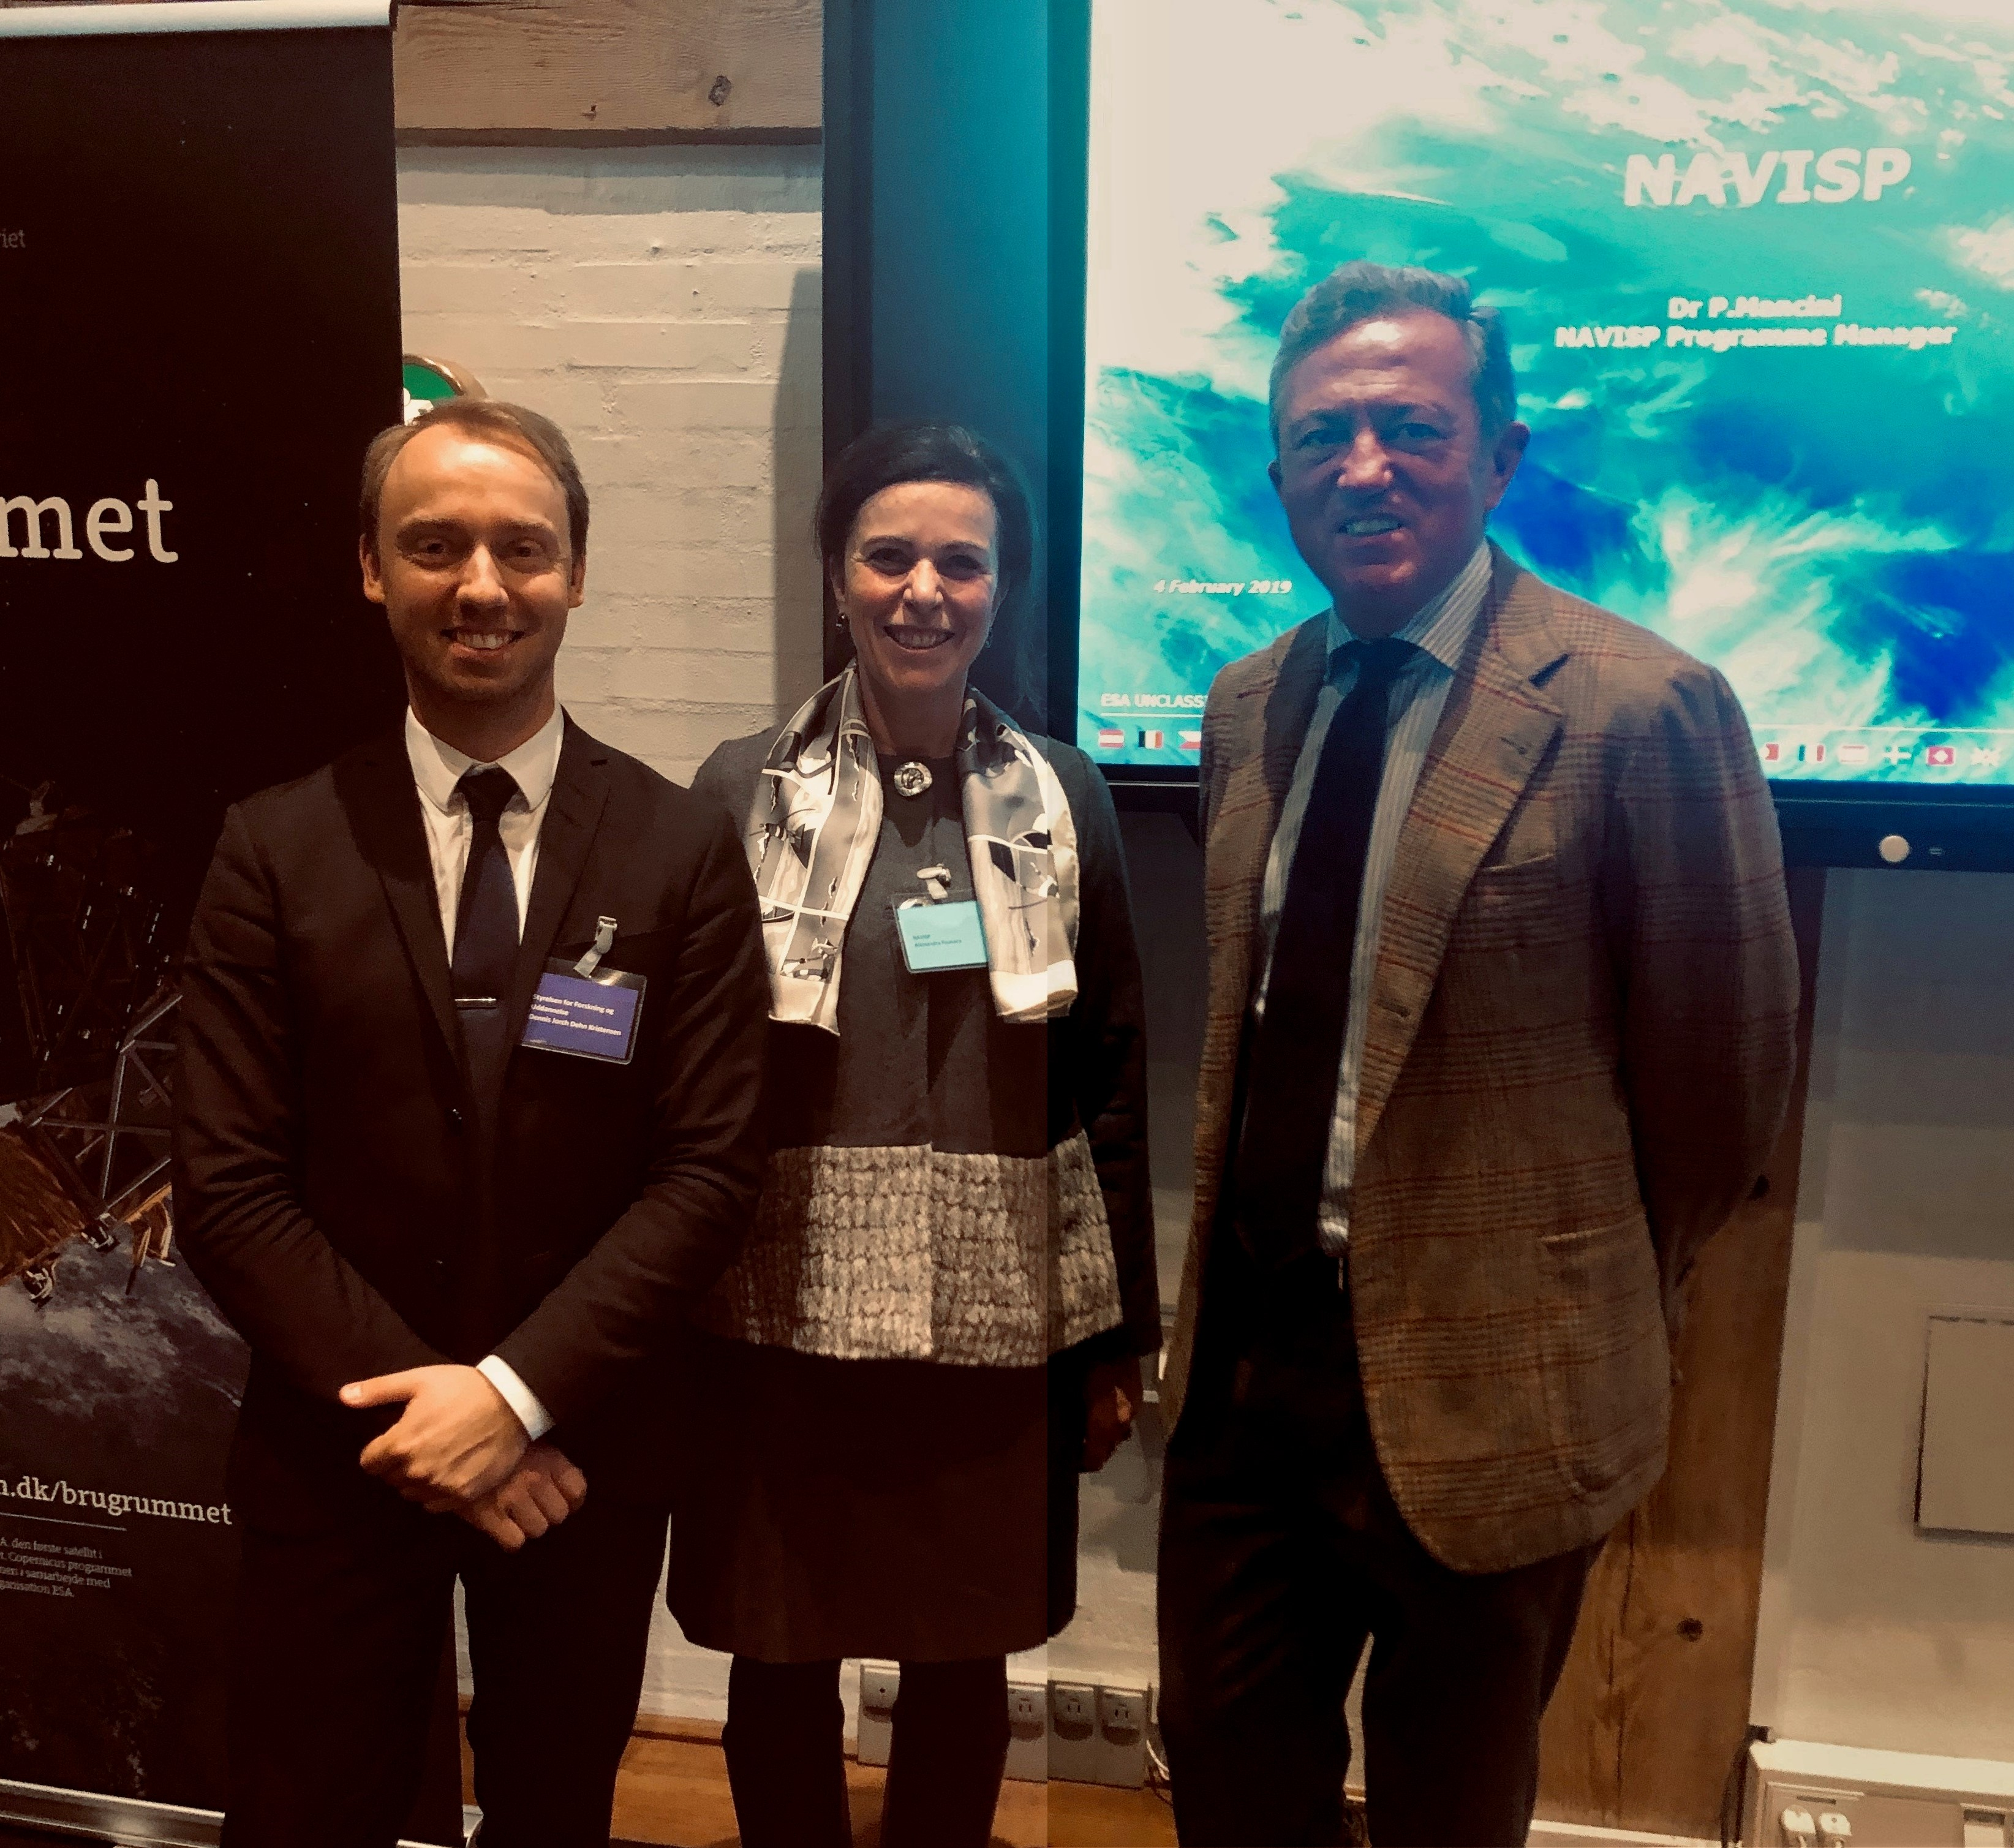 NAVISP on the scene in Copenhagen